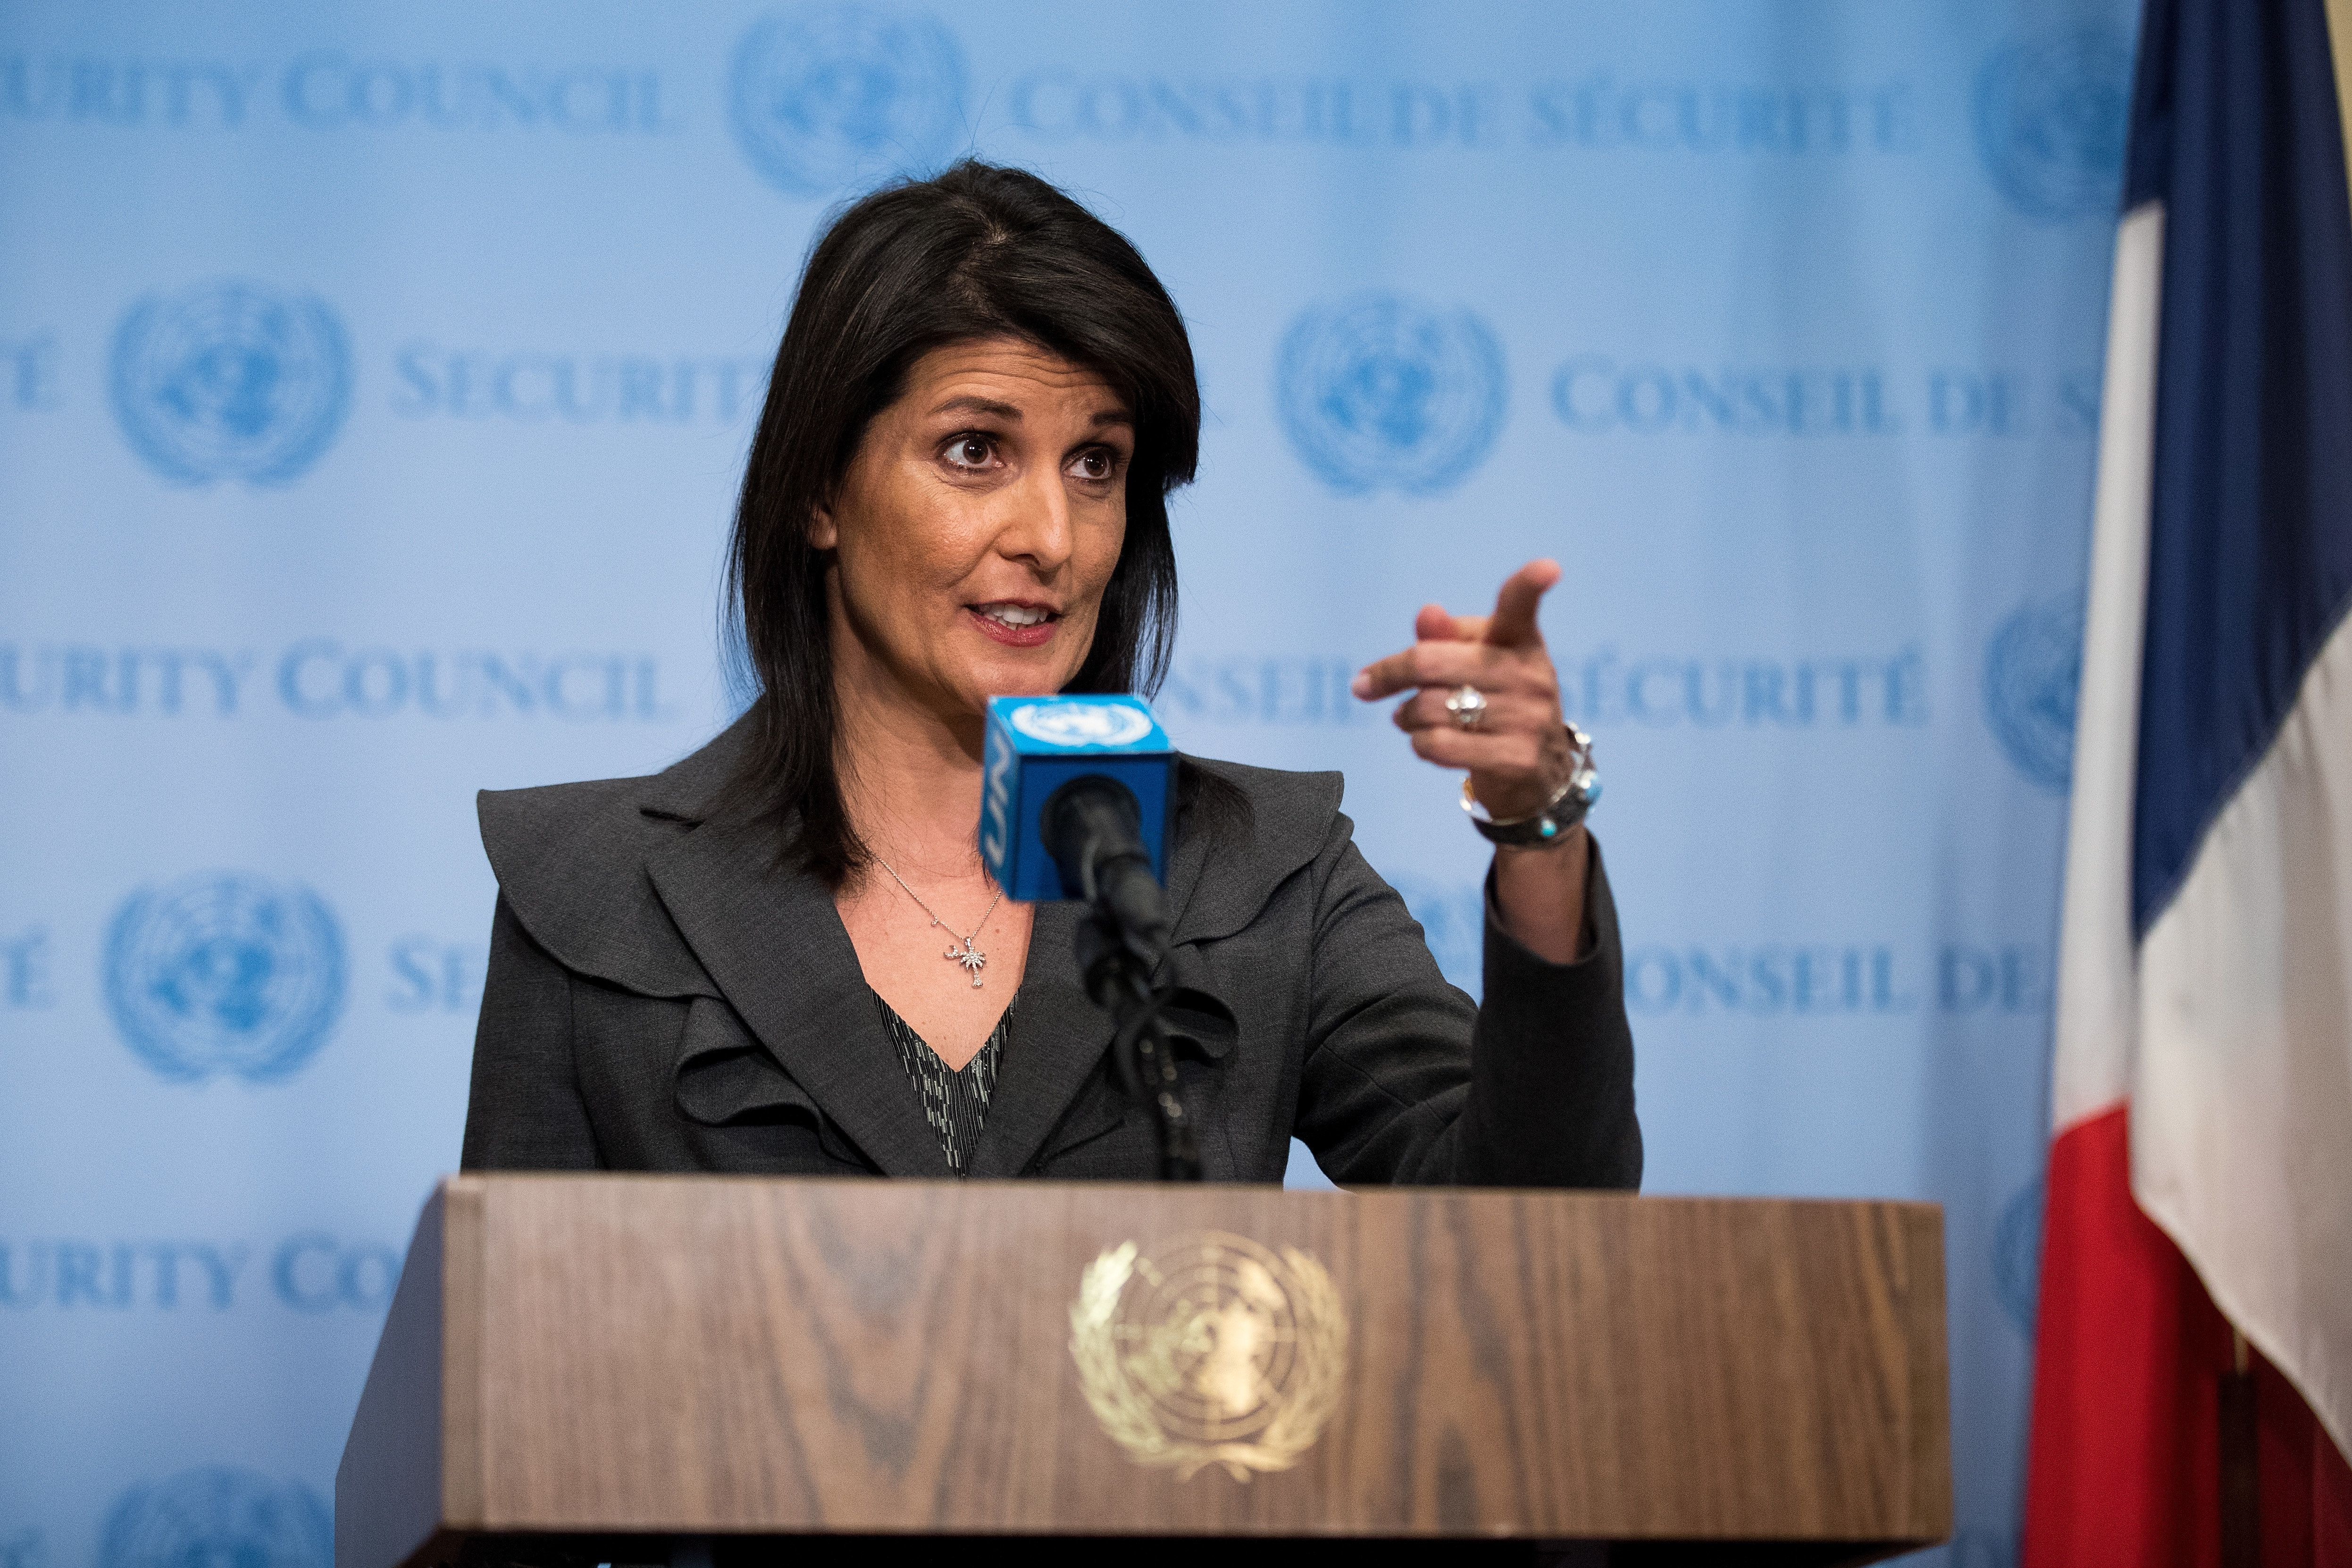 NEW YORK, NY - JANUARY 02: U.S. ambassador to the United Nations Nikki Haley speaks during a brief press availability at United Nations headquarters, January 2, 2018 in New York City. She discussed protests in Iran and the North Korea nuclear threat. (Photo by Drew Angerer/Getty Images)